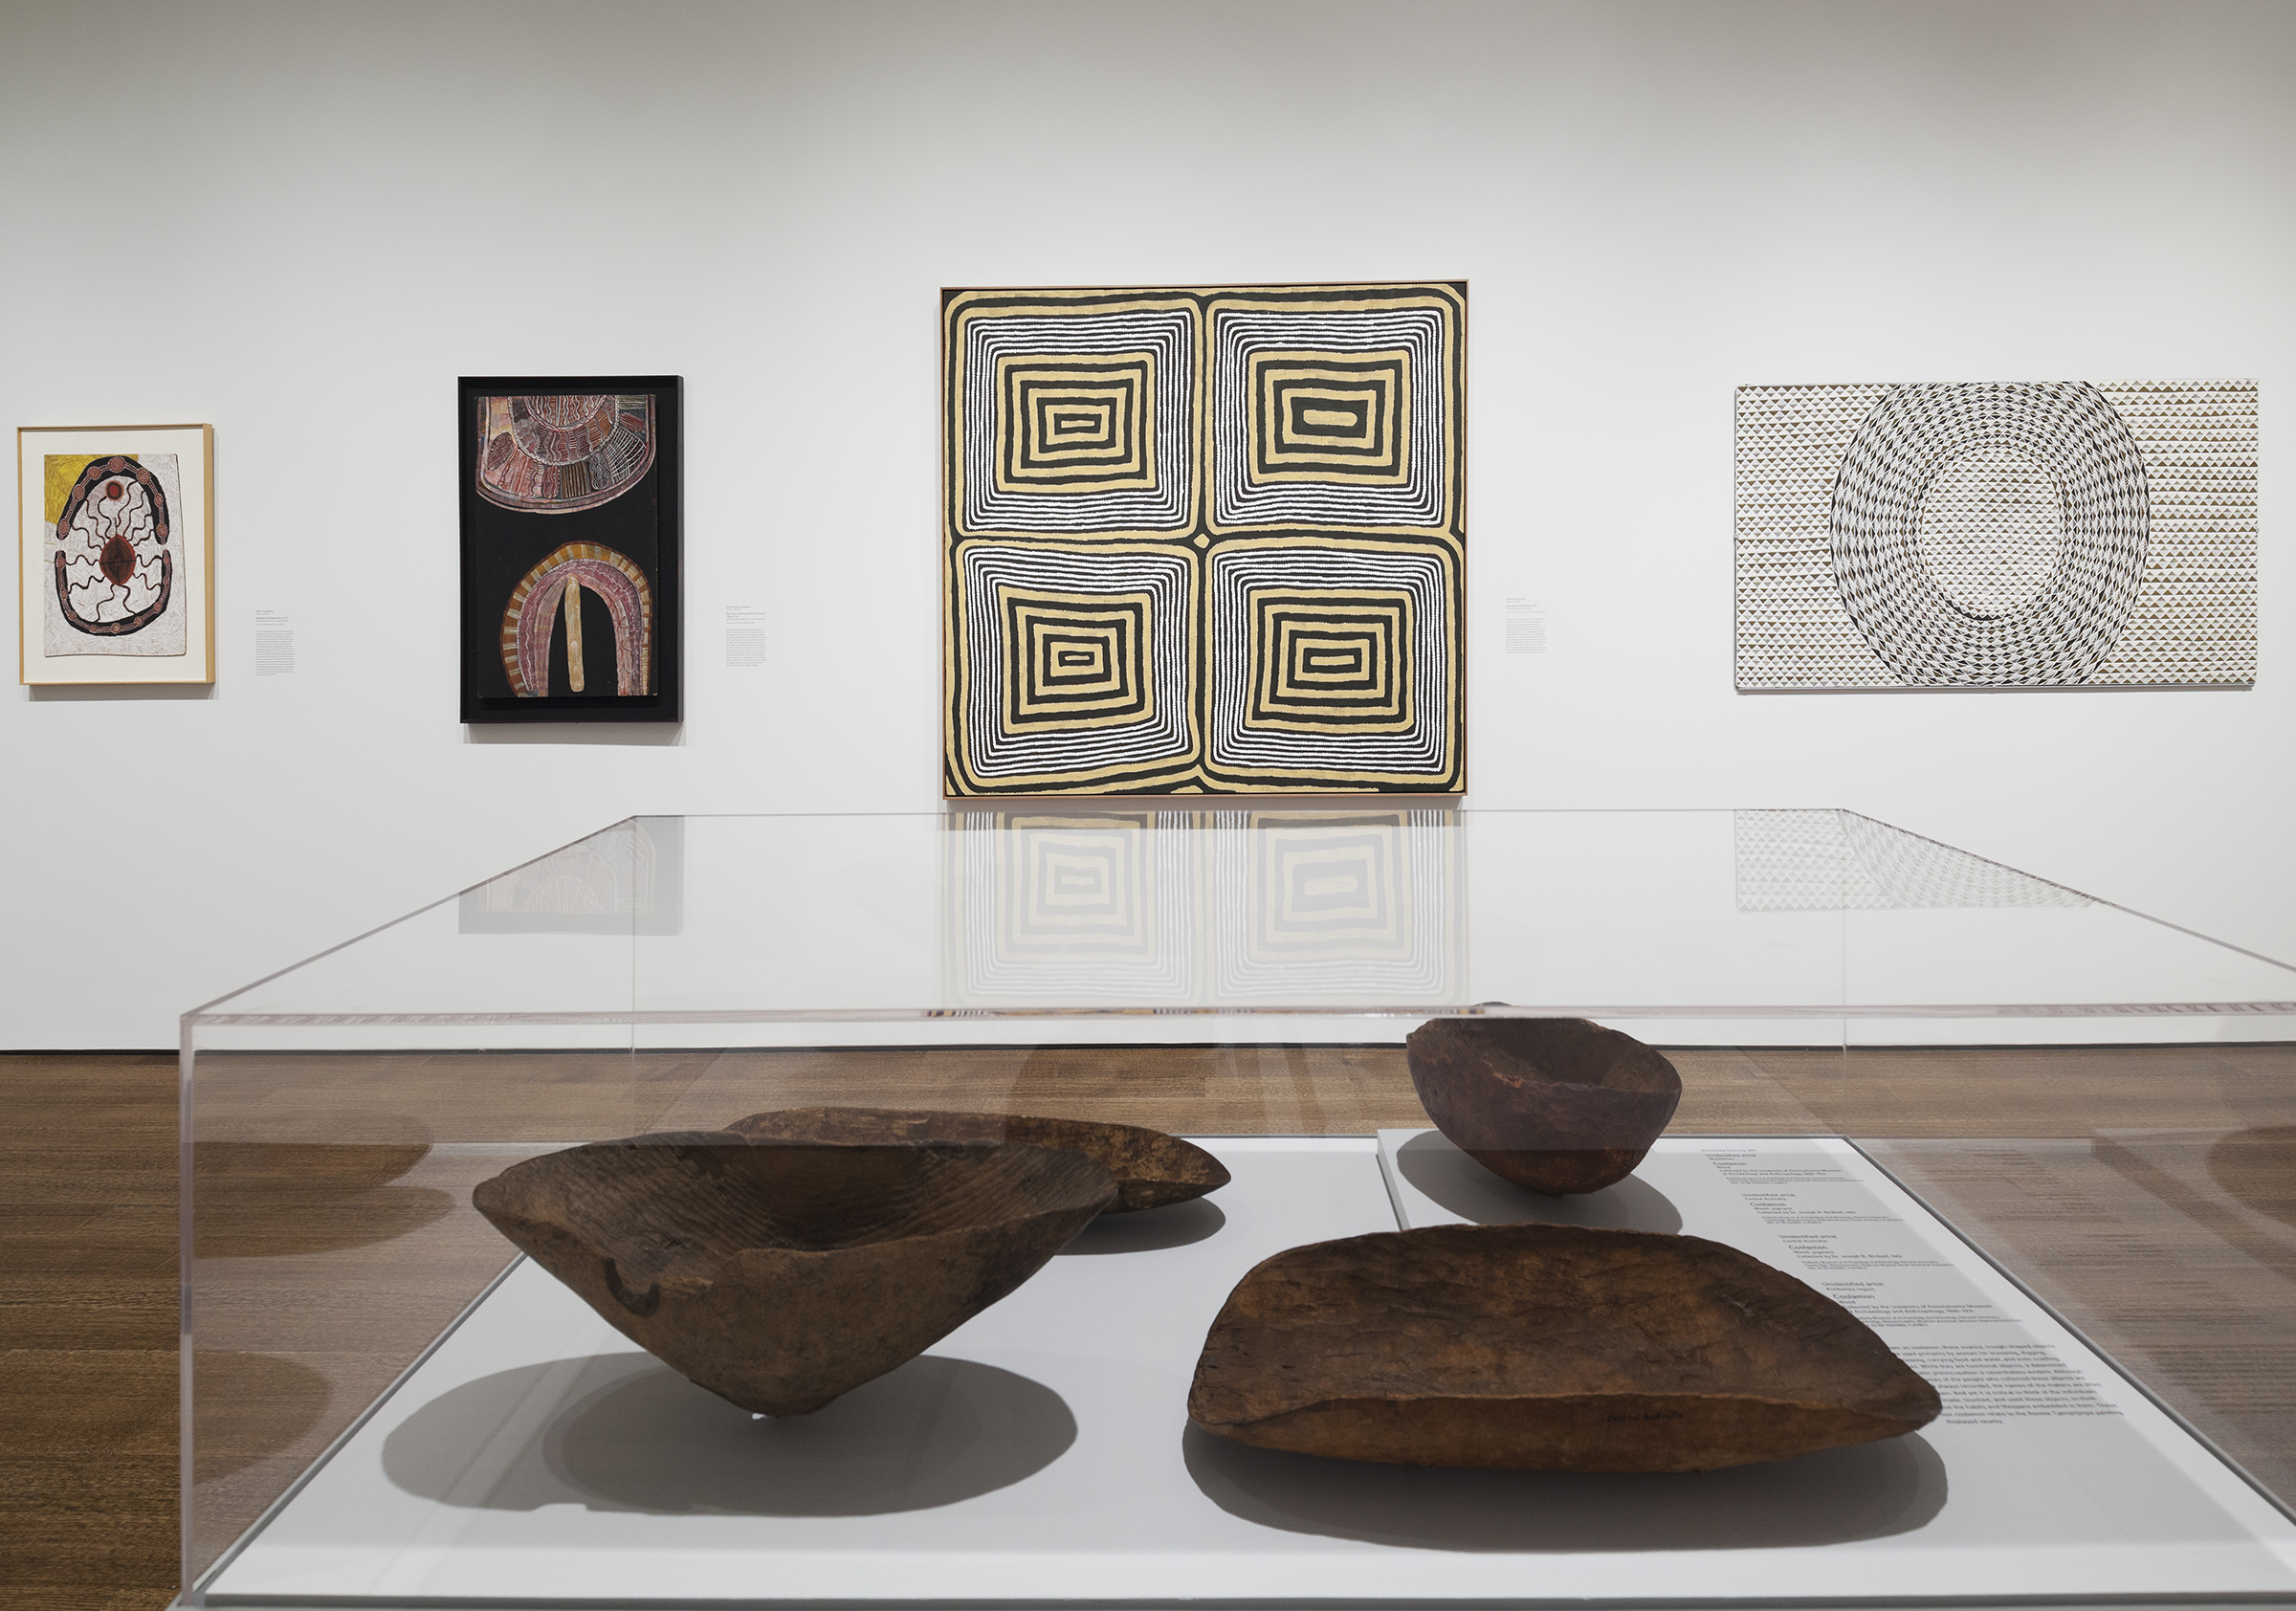 In the foreground of a gallery, a glass case with four wooden bowl like objects are on display. Hanging on the wall in the background are four bright abstract paintings by Australian indigenous artists.